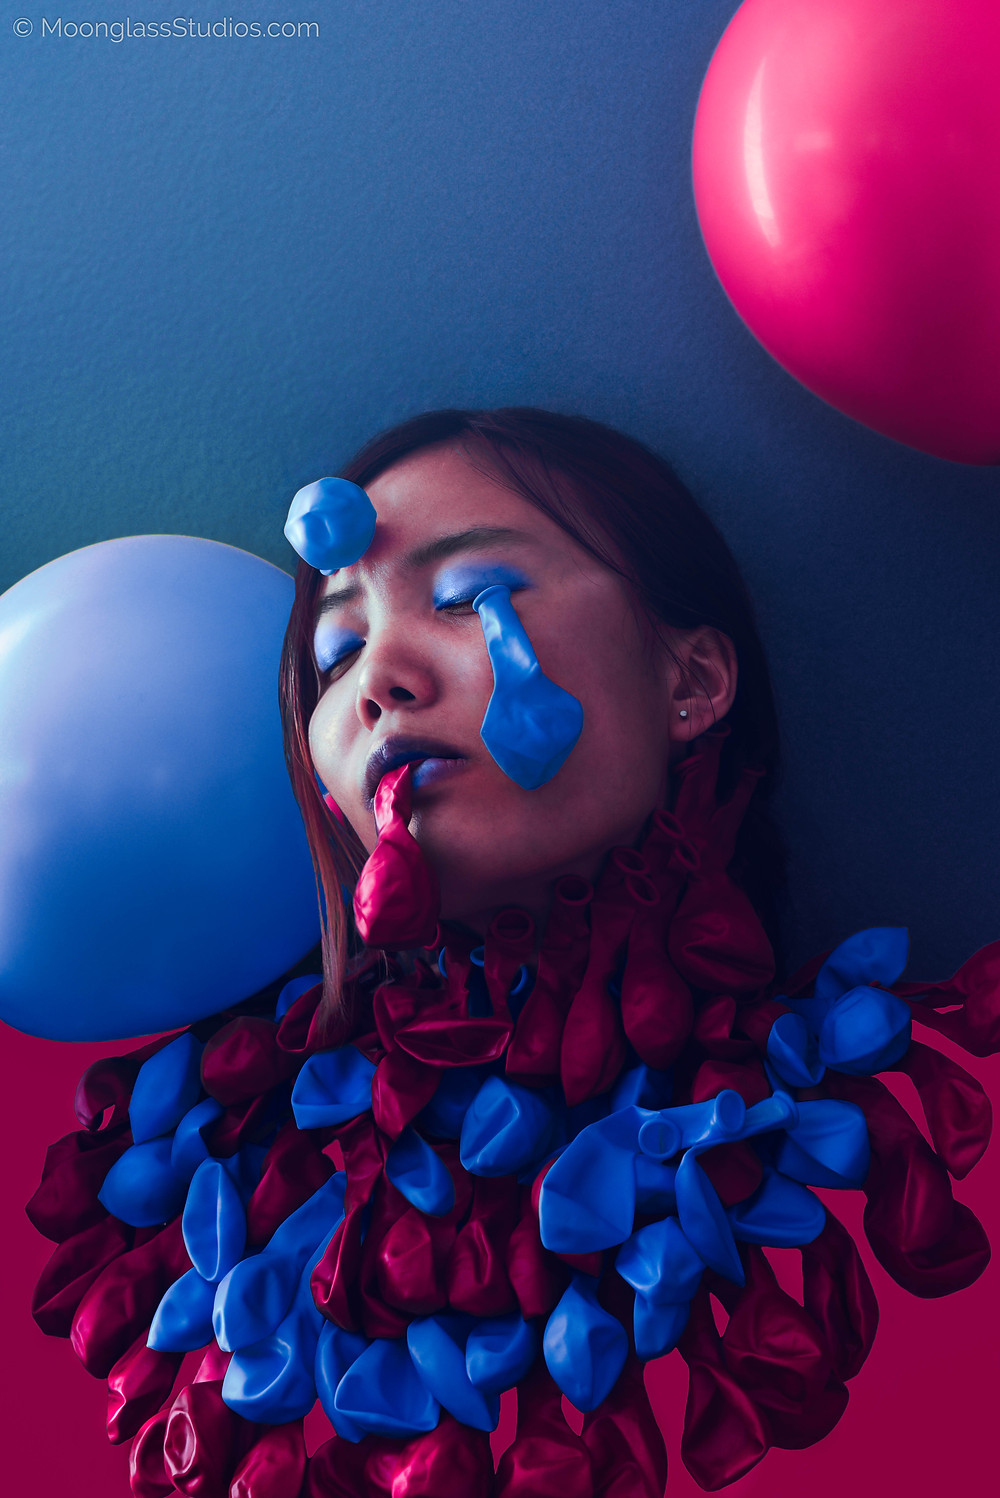 Bipolar Balloons by Diana Chao